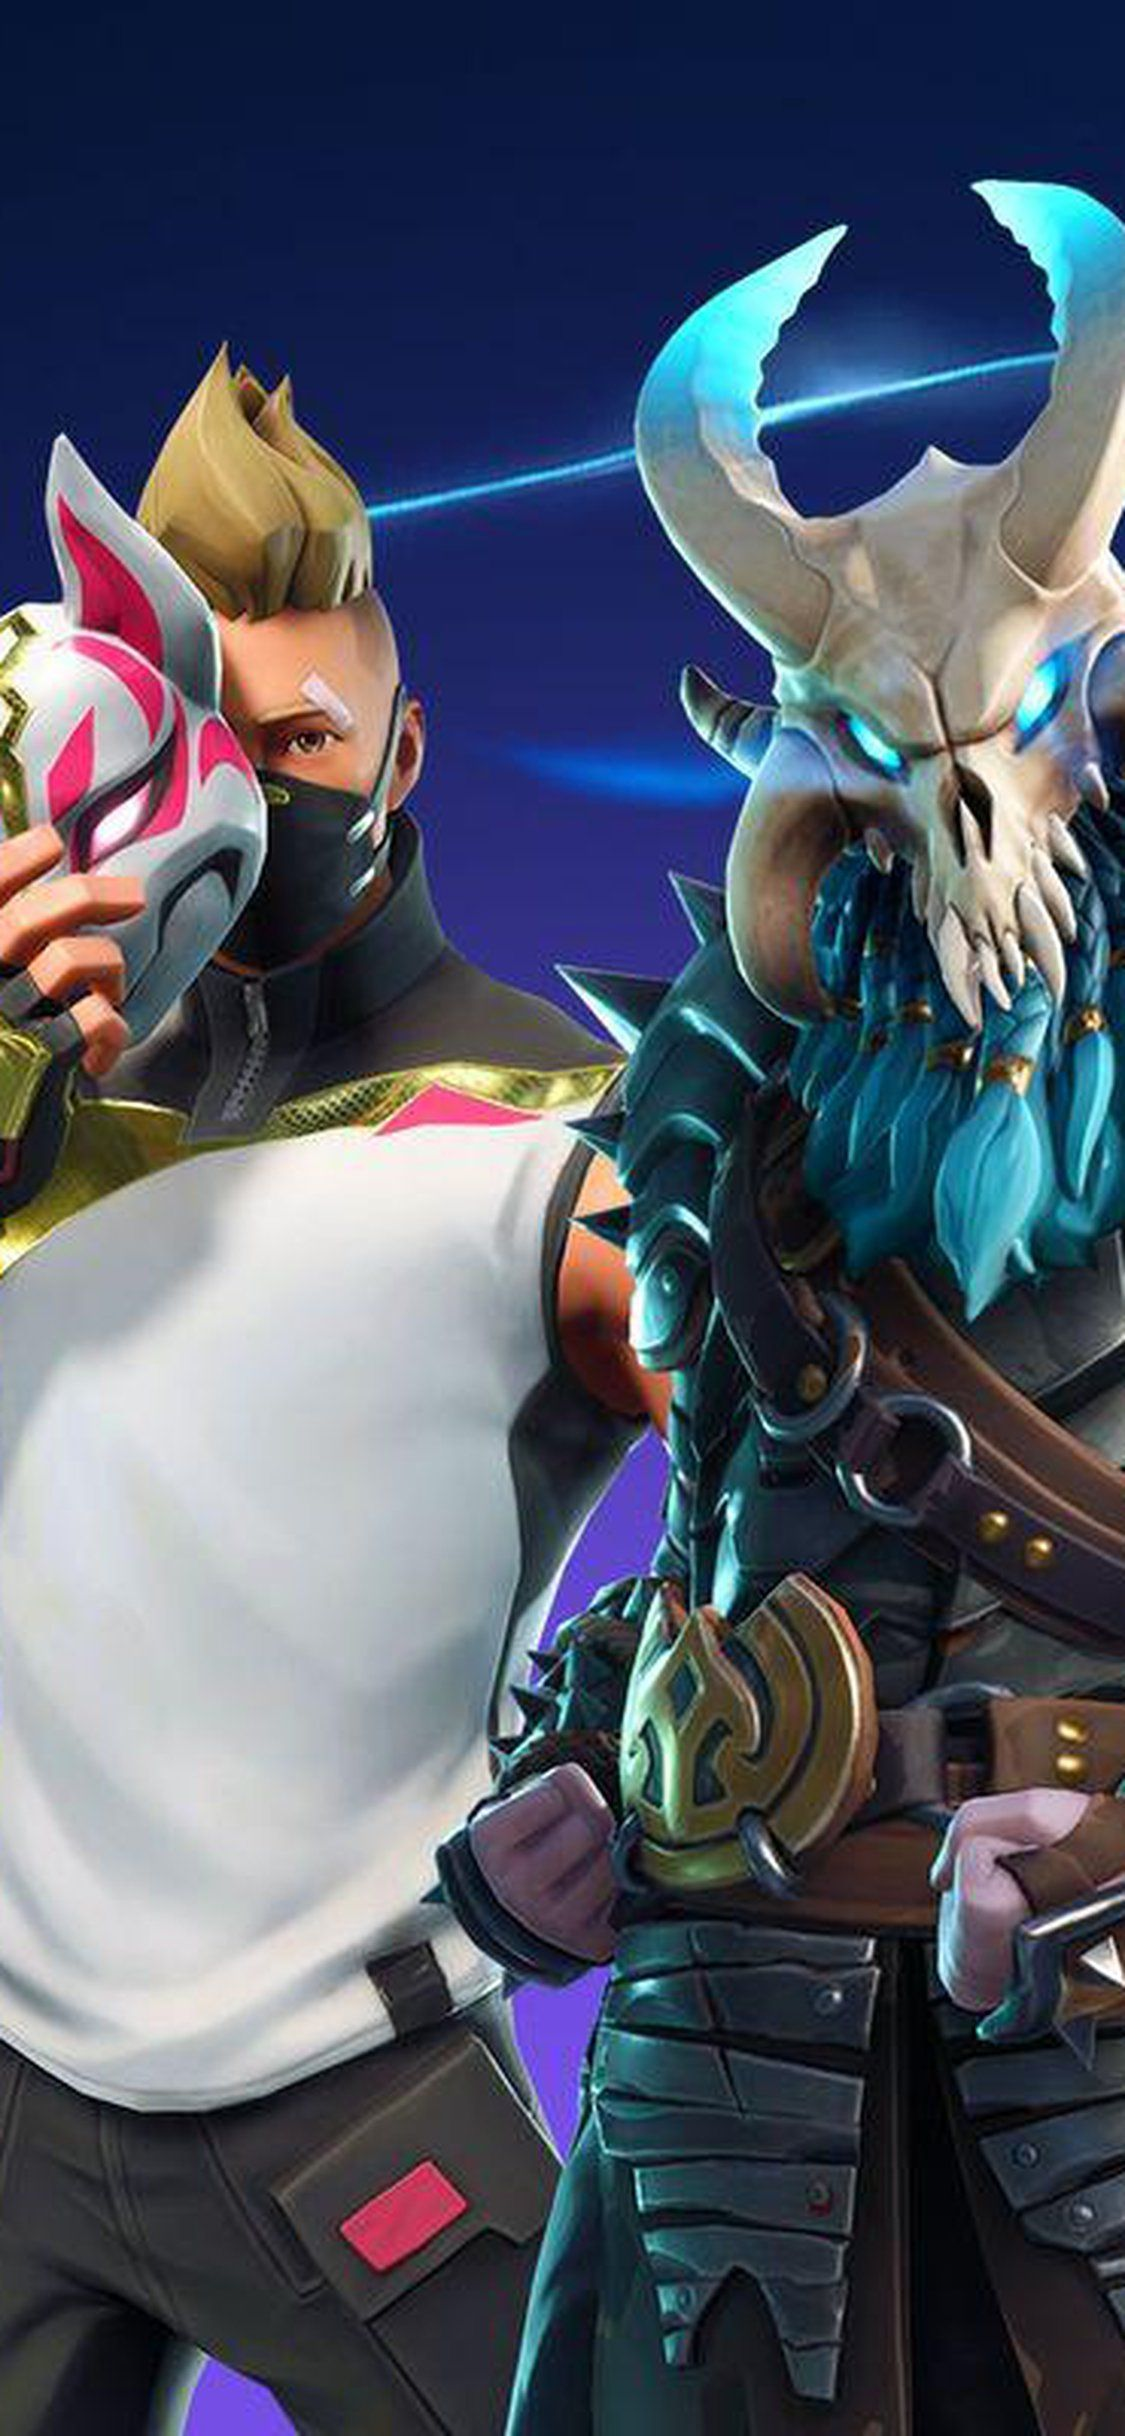 30 Best Free Fortnite Iphone 5 Wallpapers Wallpaperaccess